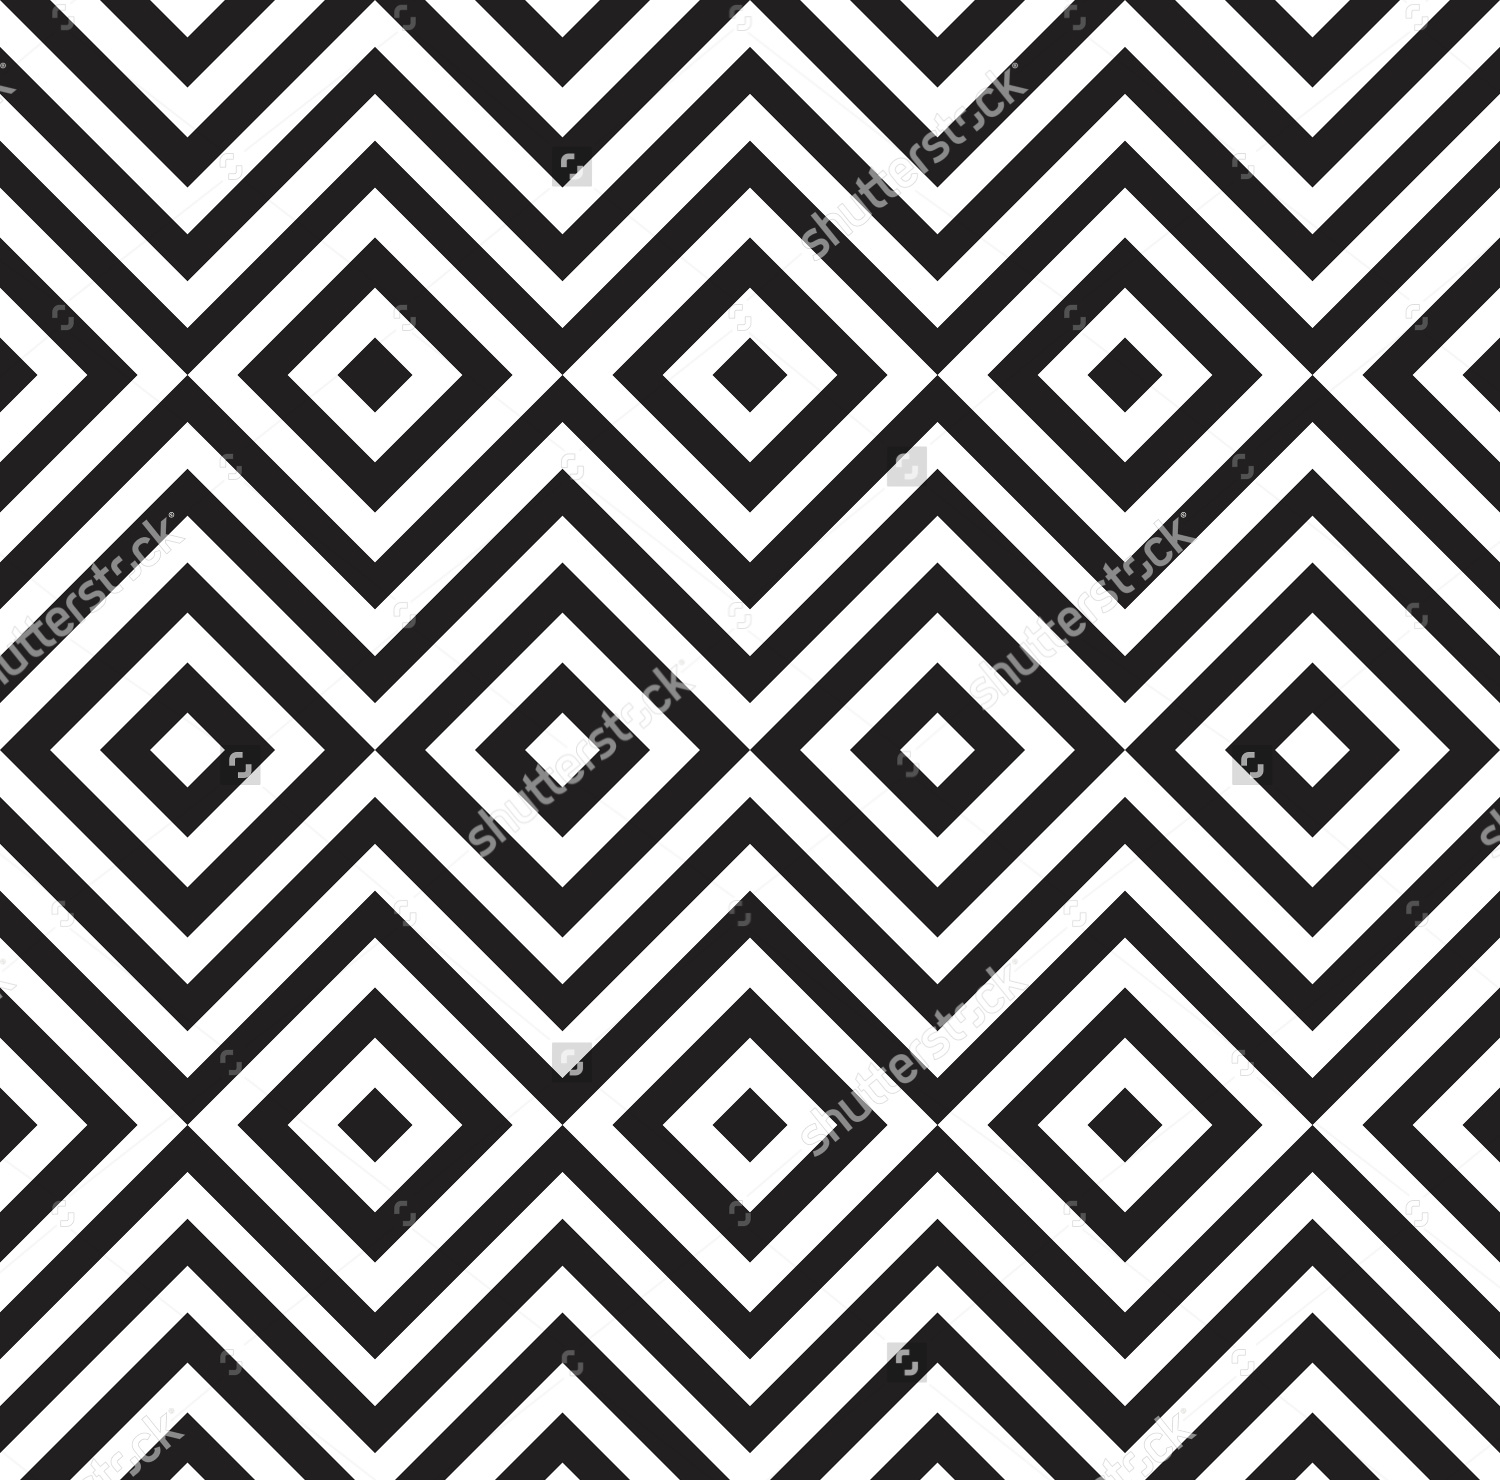 Black and white Chevron background